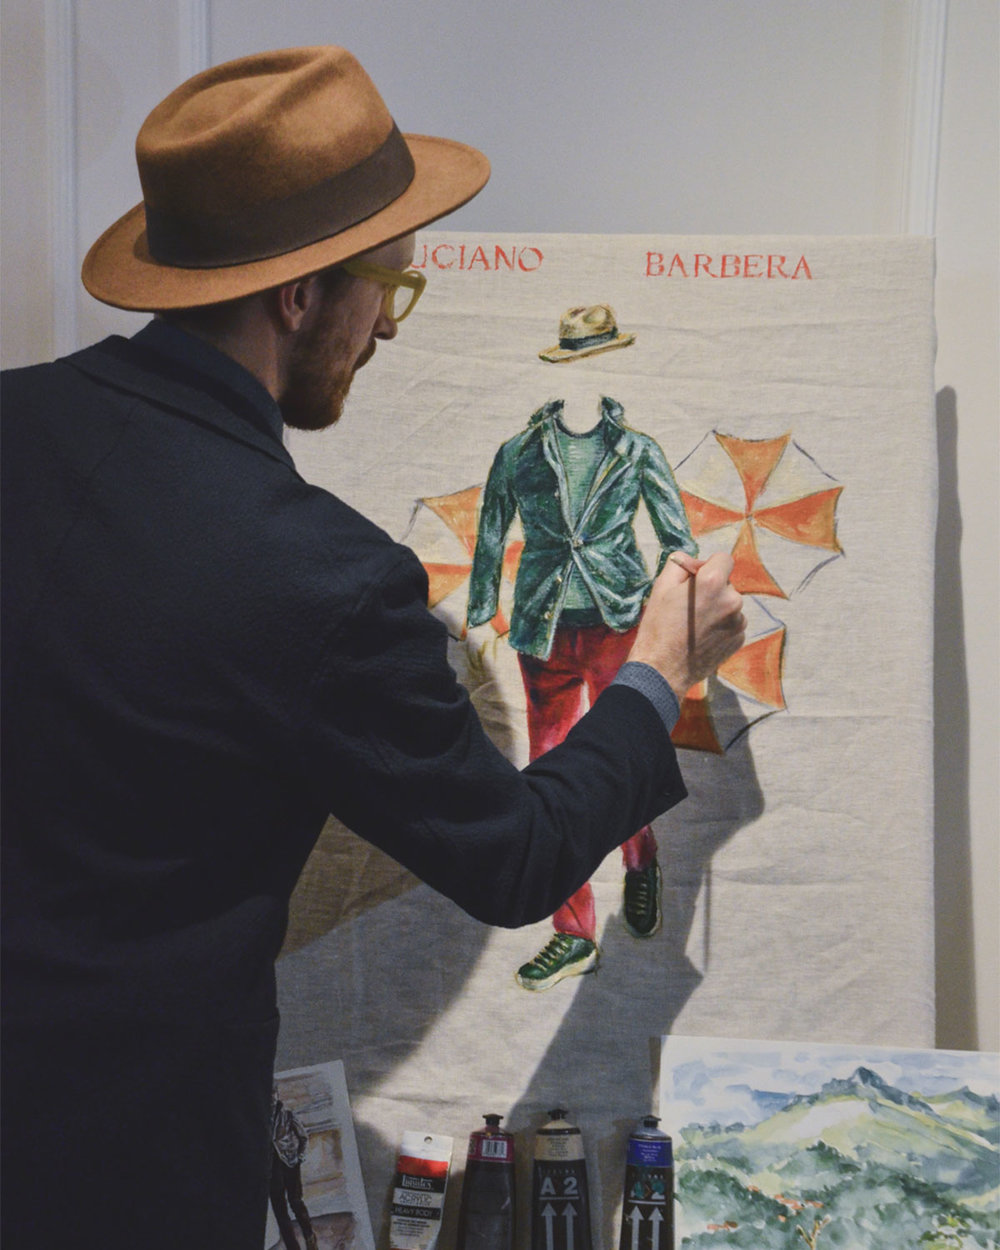 Luciano Barbera - Live Event Painting, Pitti Uomo 92